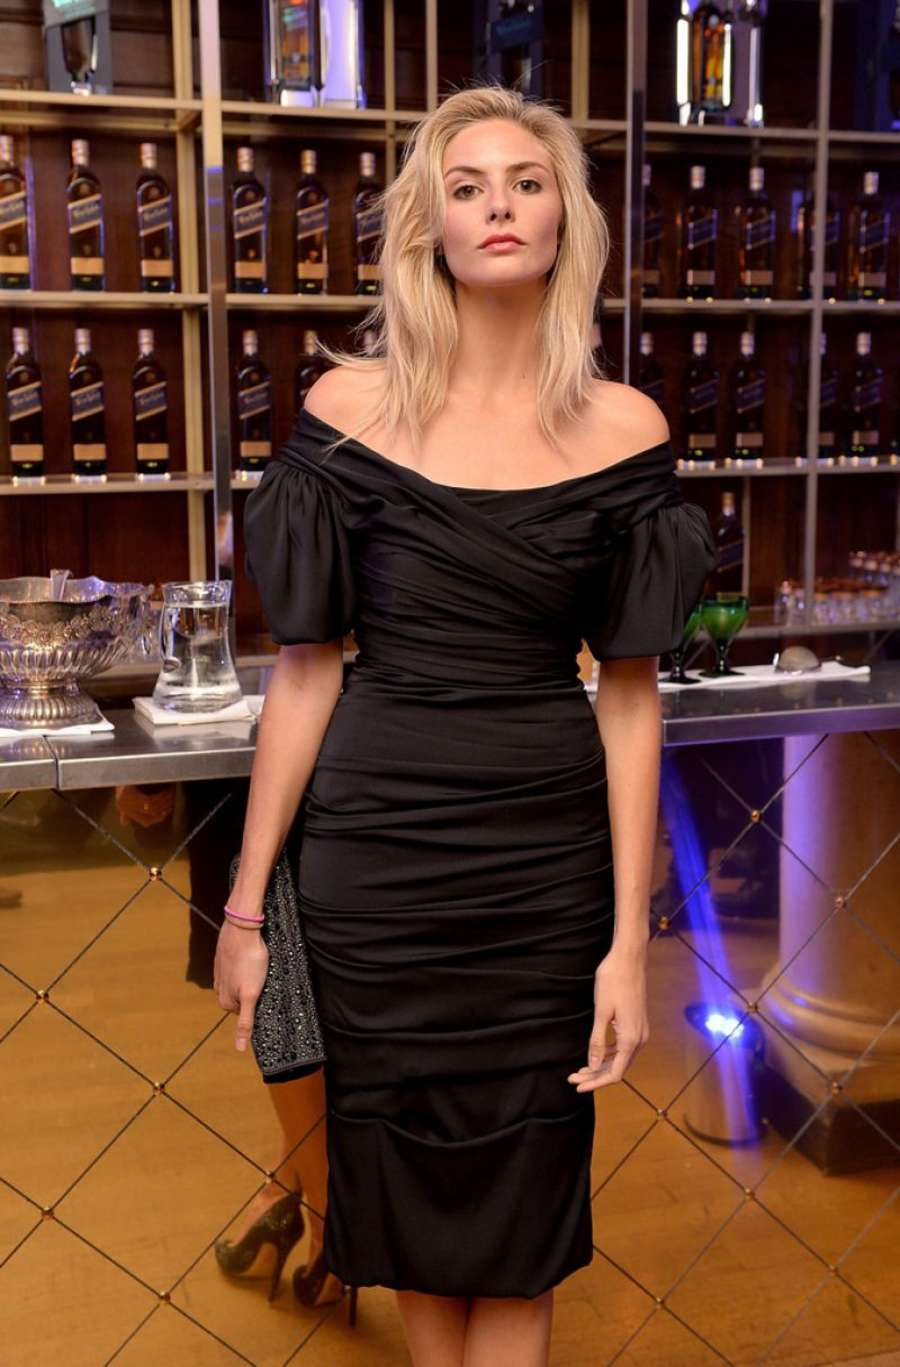 Tamsin Egerton Symphony In Blue A Journey To The Centre of The Glass in London